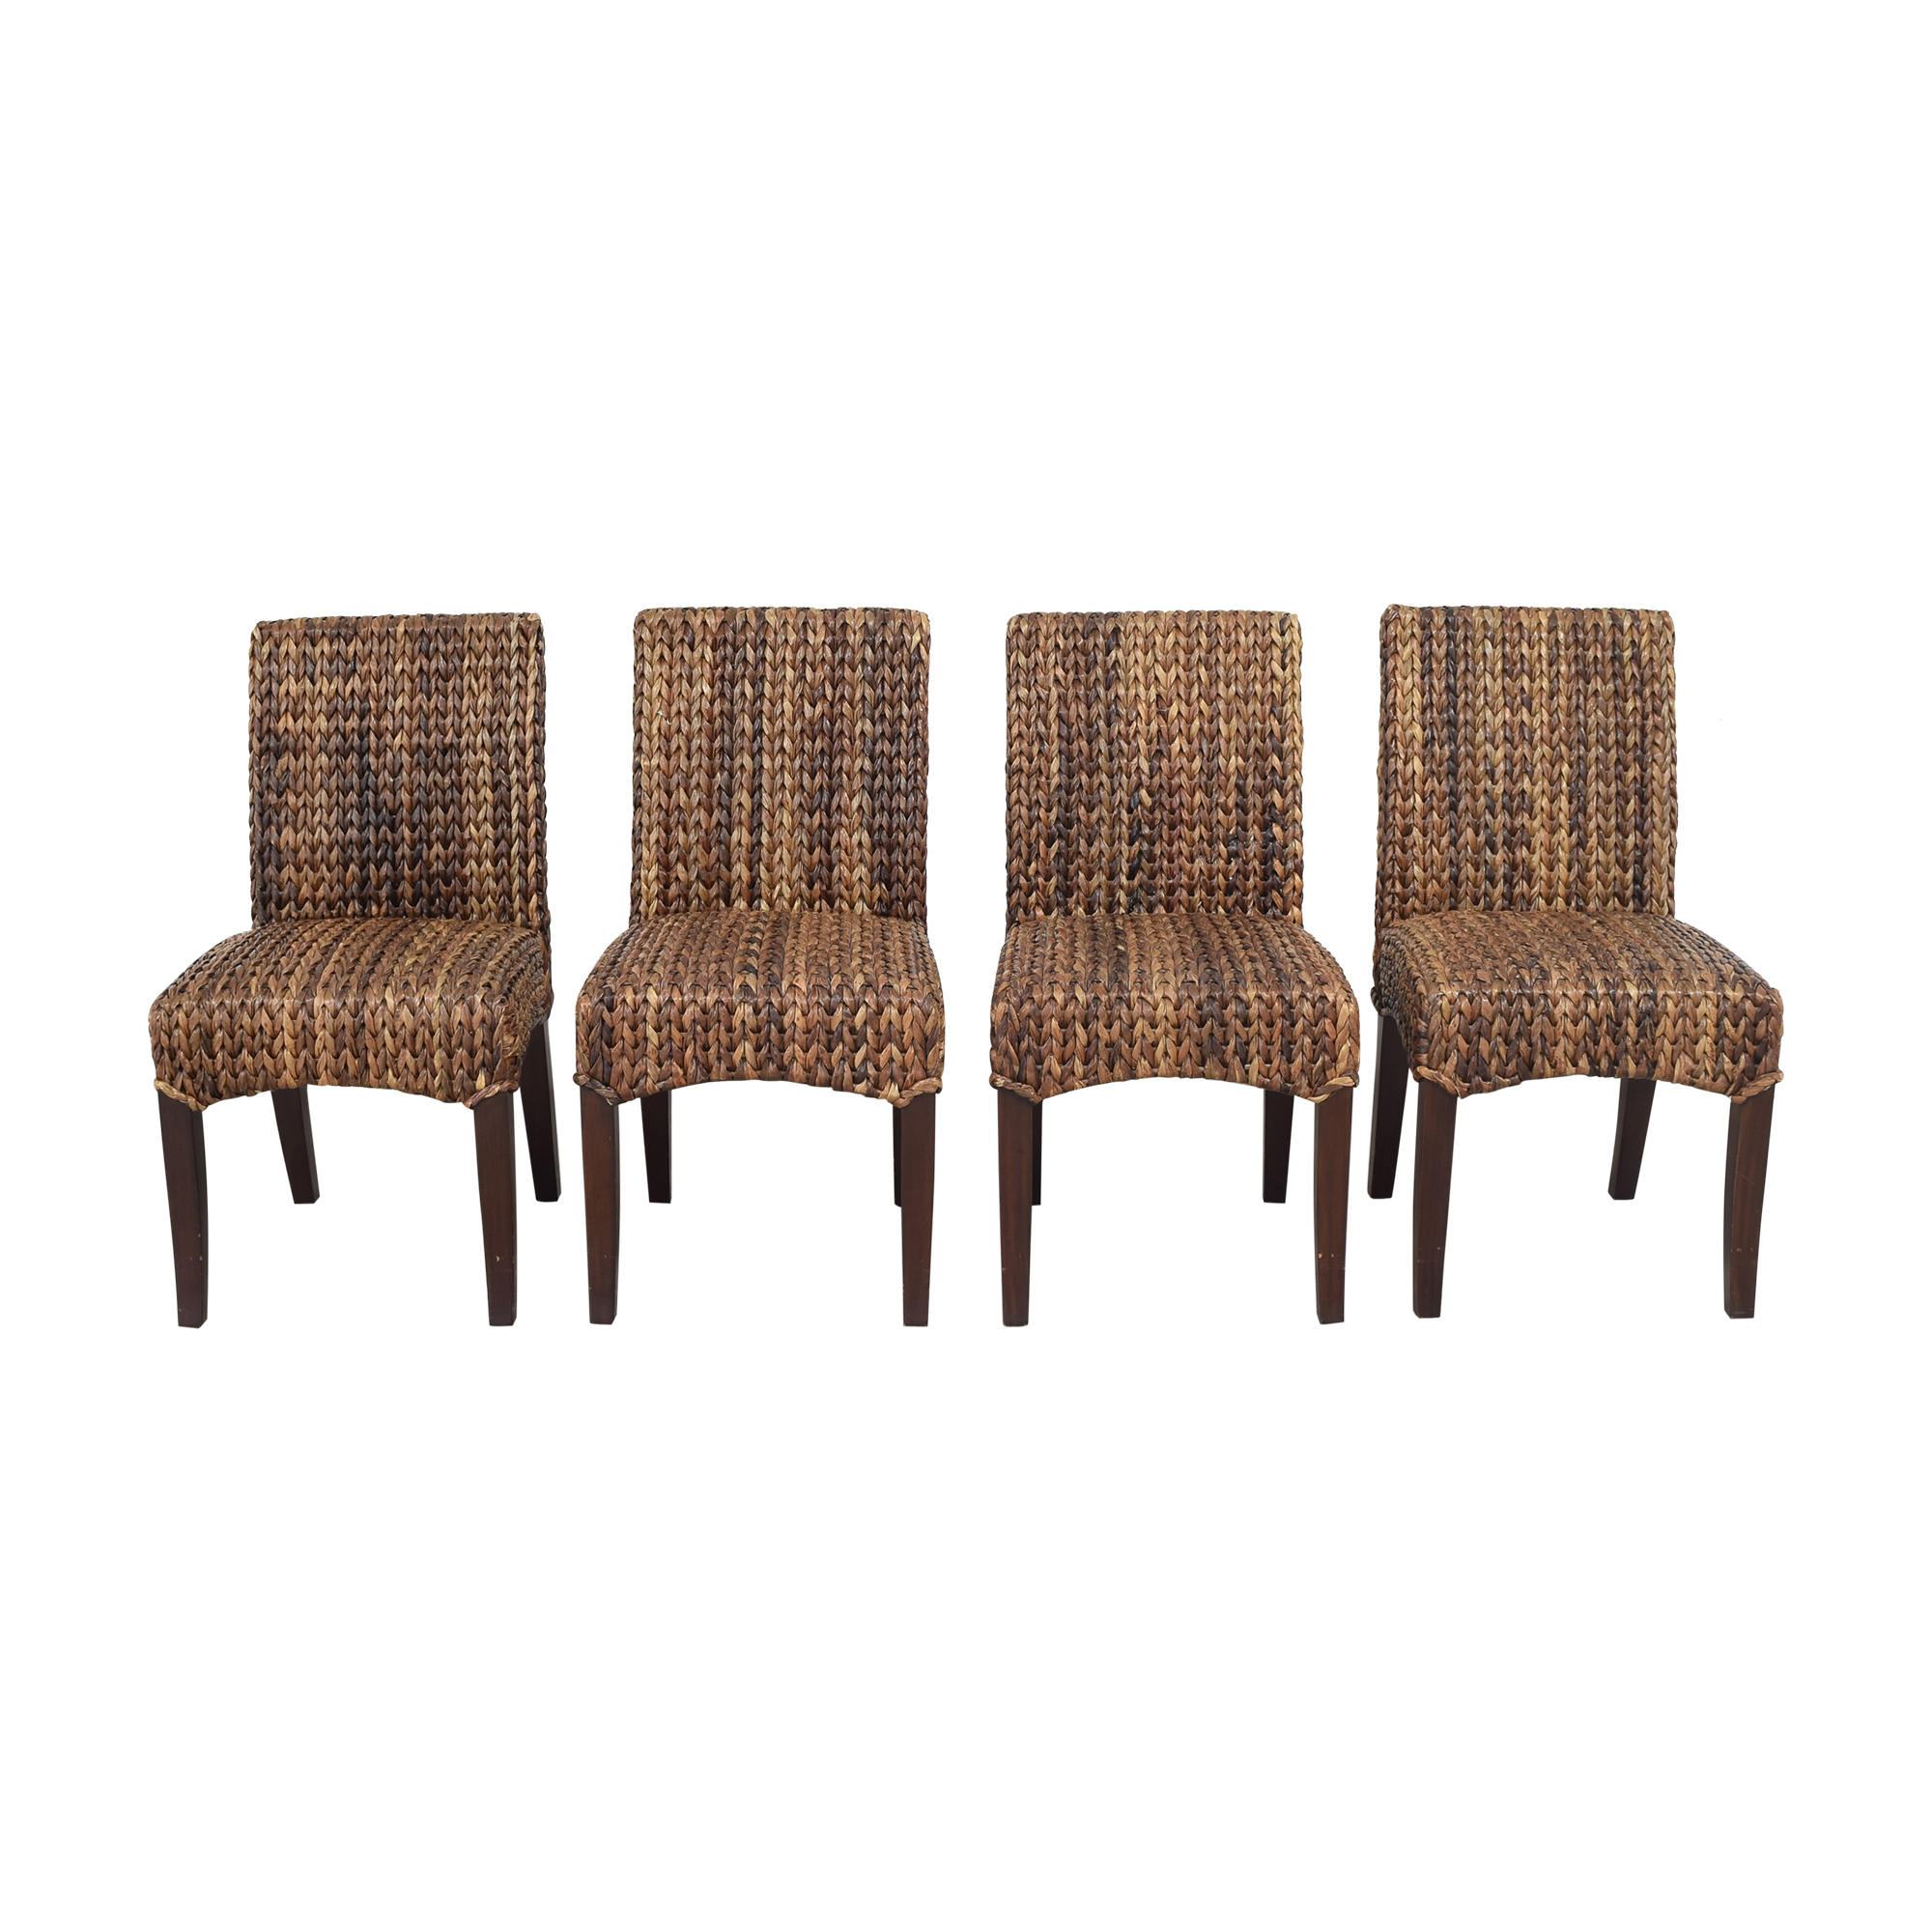 Pottery Barn Pottery Barn Seagrass Dining Side Chairs Chairs